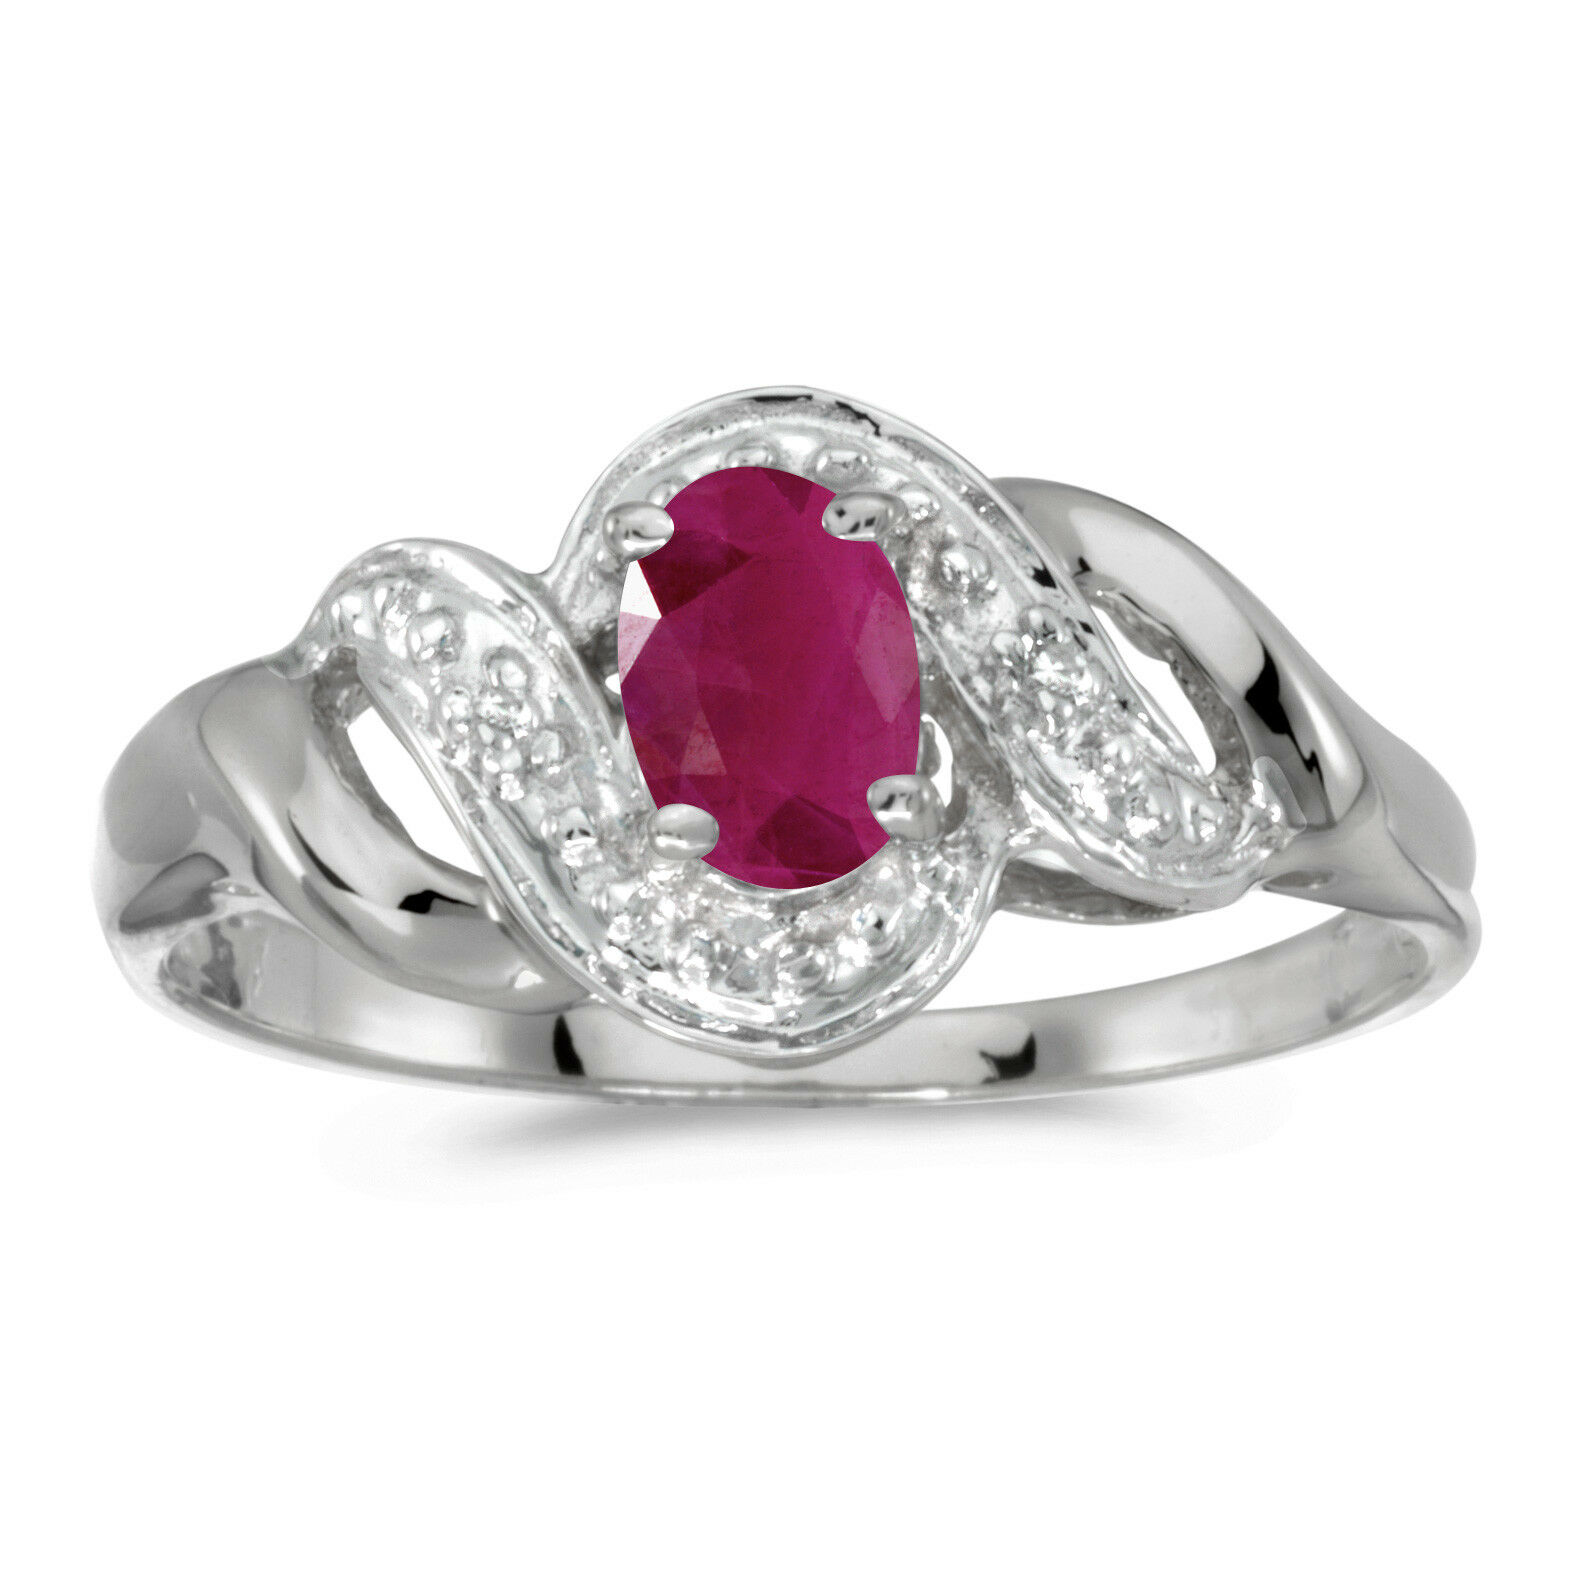 14k White gold Oval Ruby And Diamond Swirl Ring